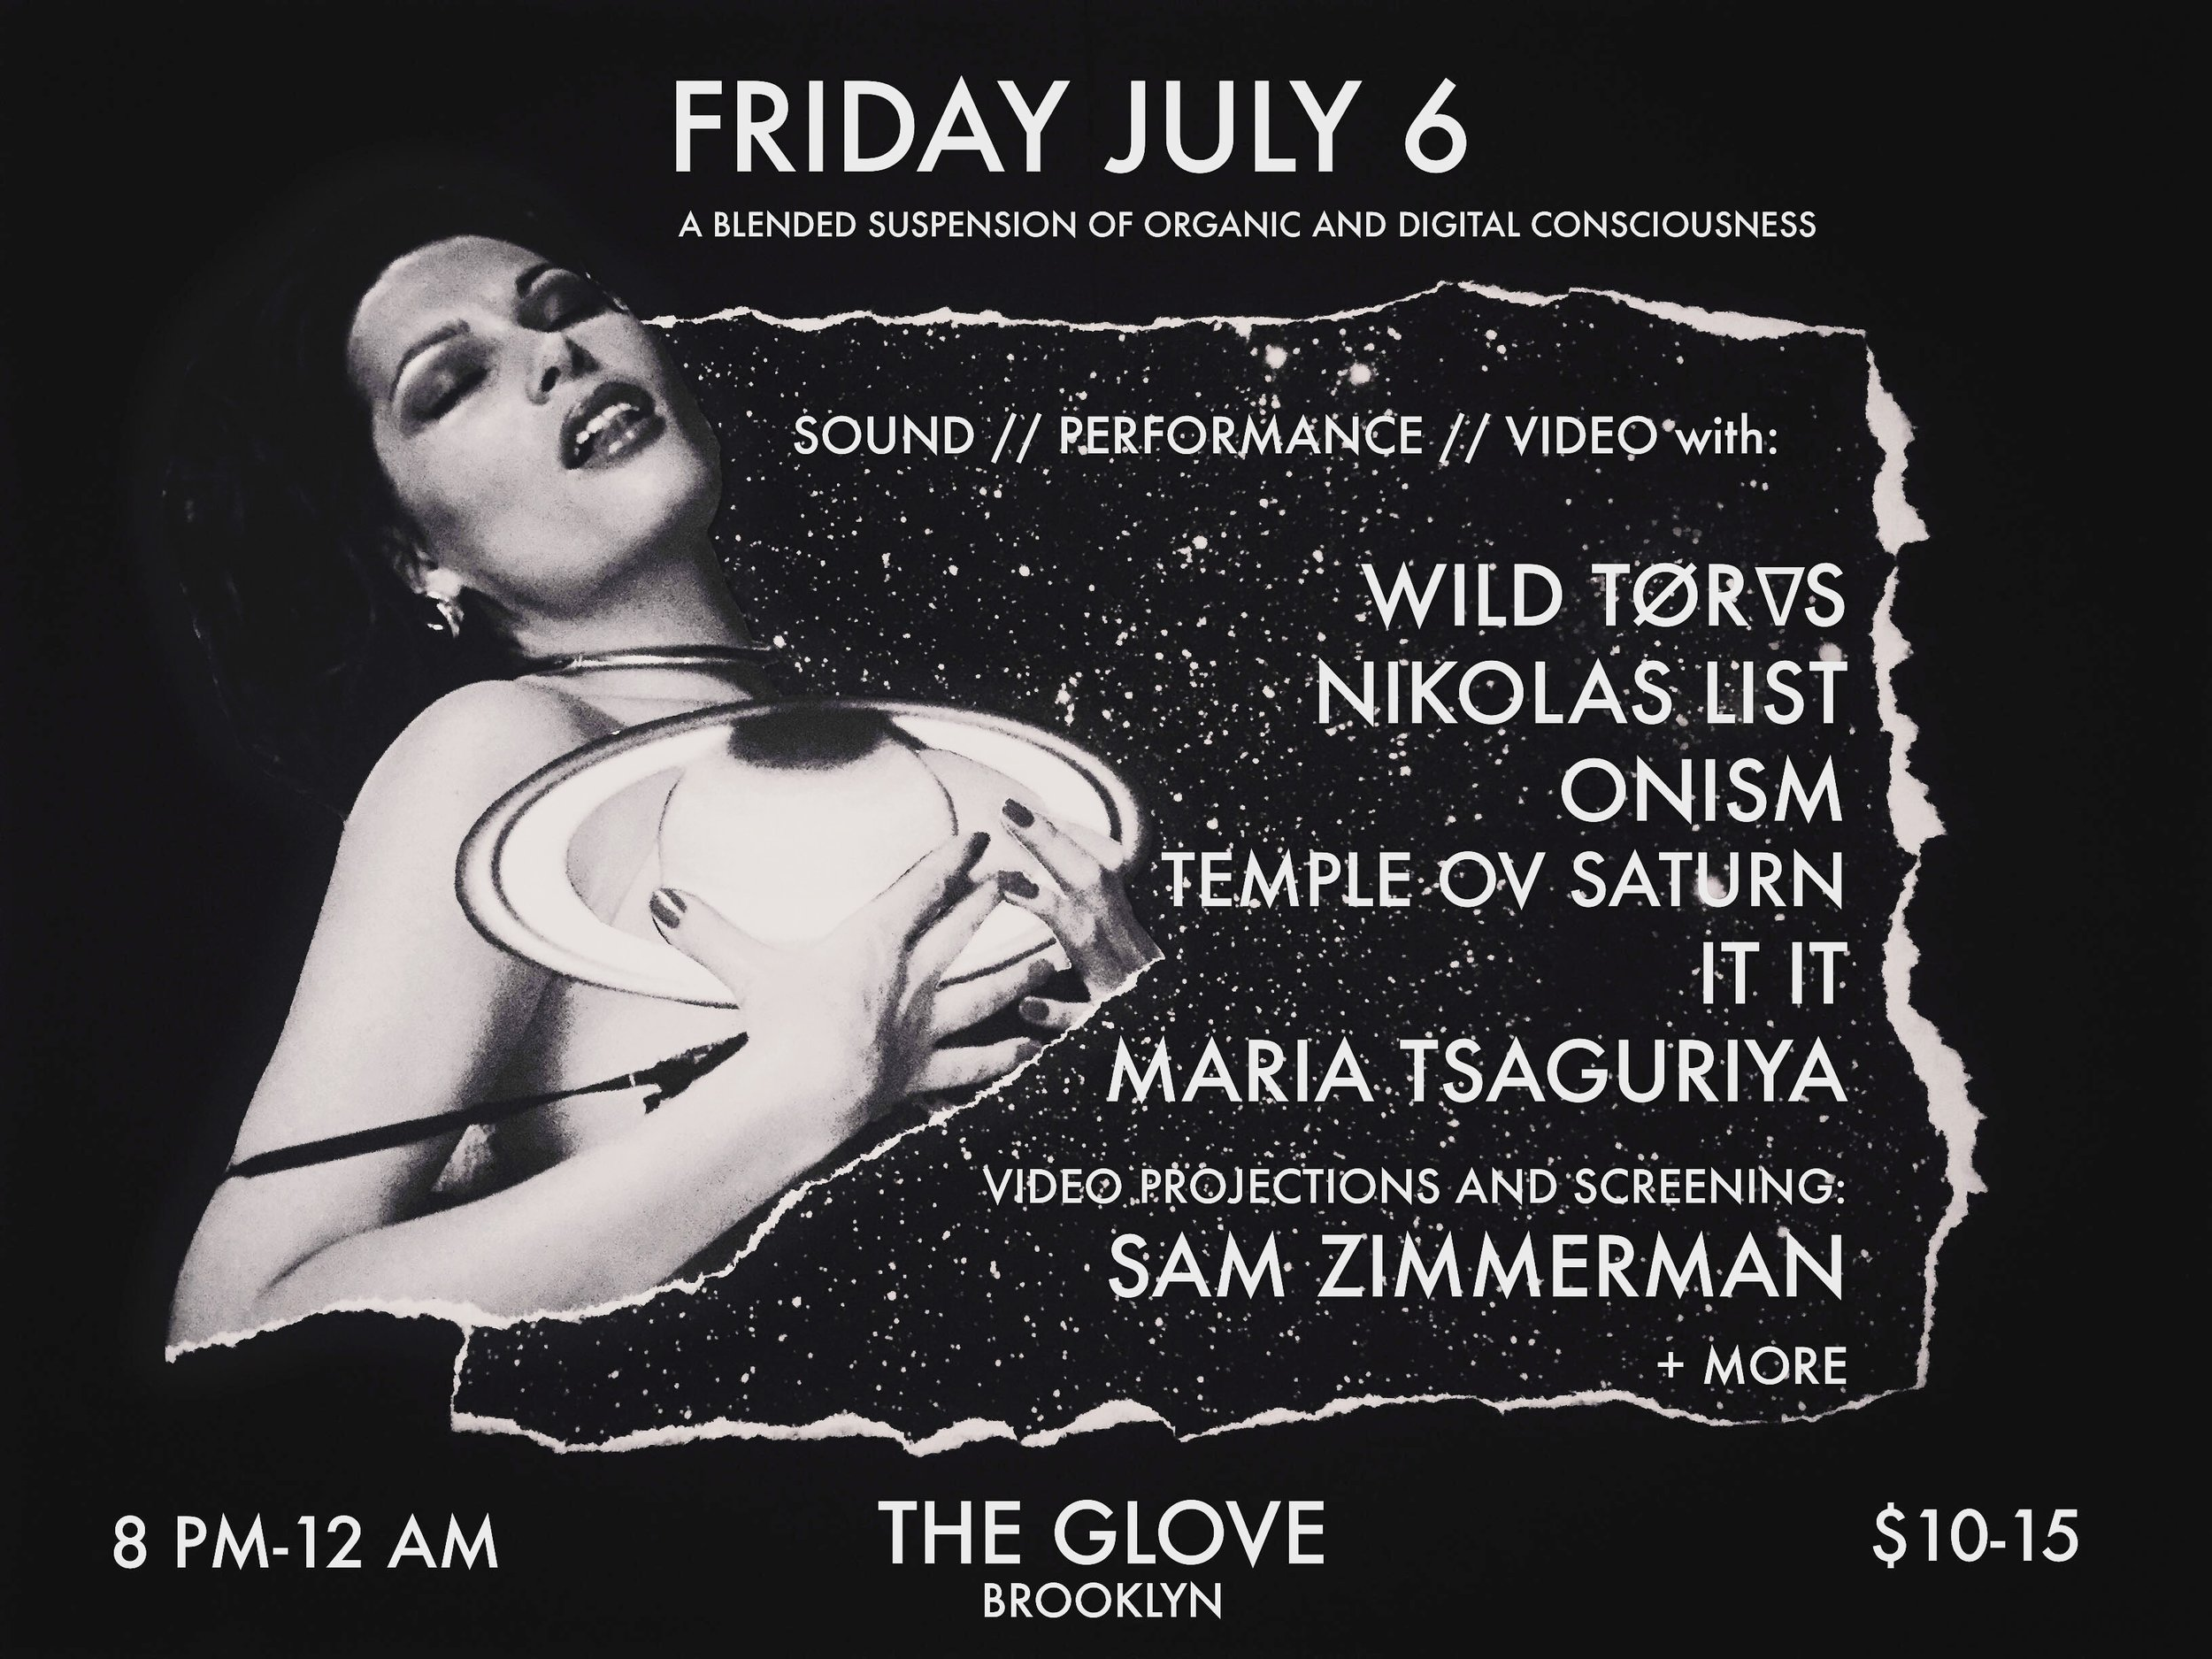 Temple ov Saturn - July 6th at The Glove in Brooklyn